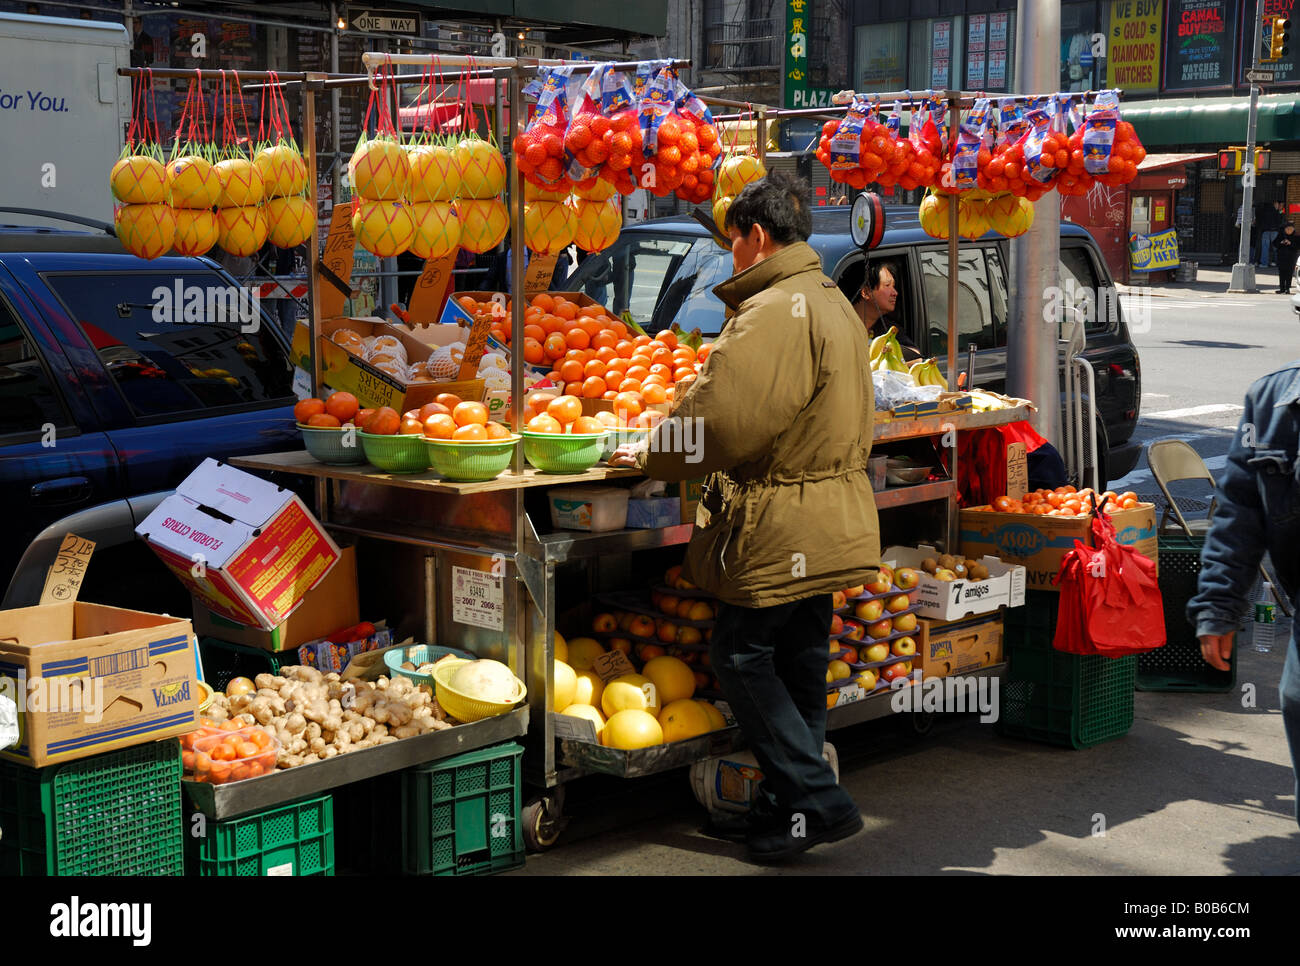 Greengrocery in Chinatown, New York - Stock Image